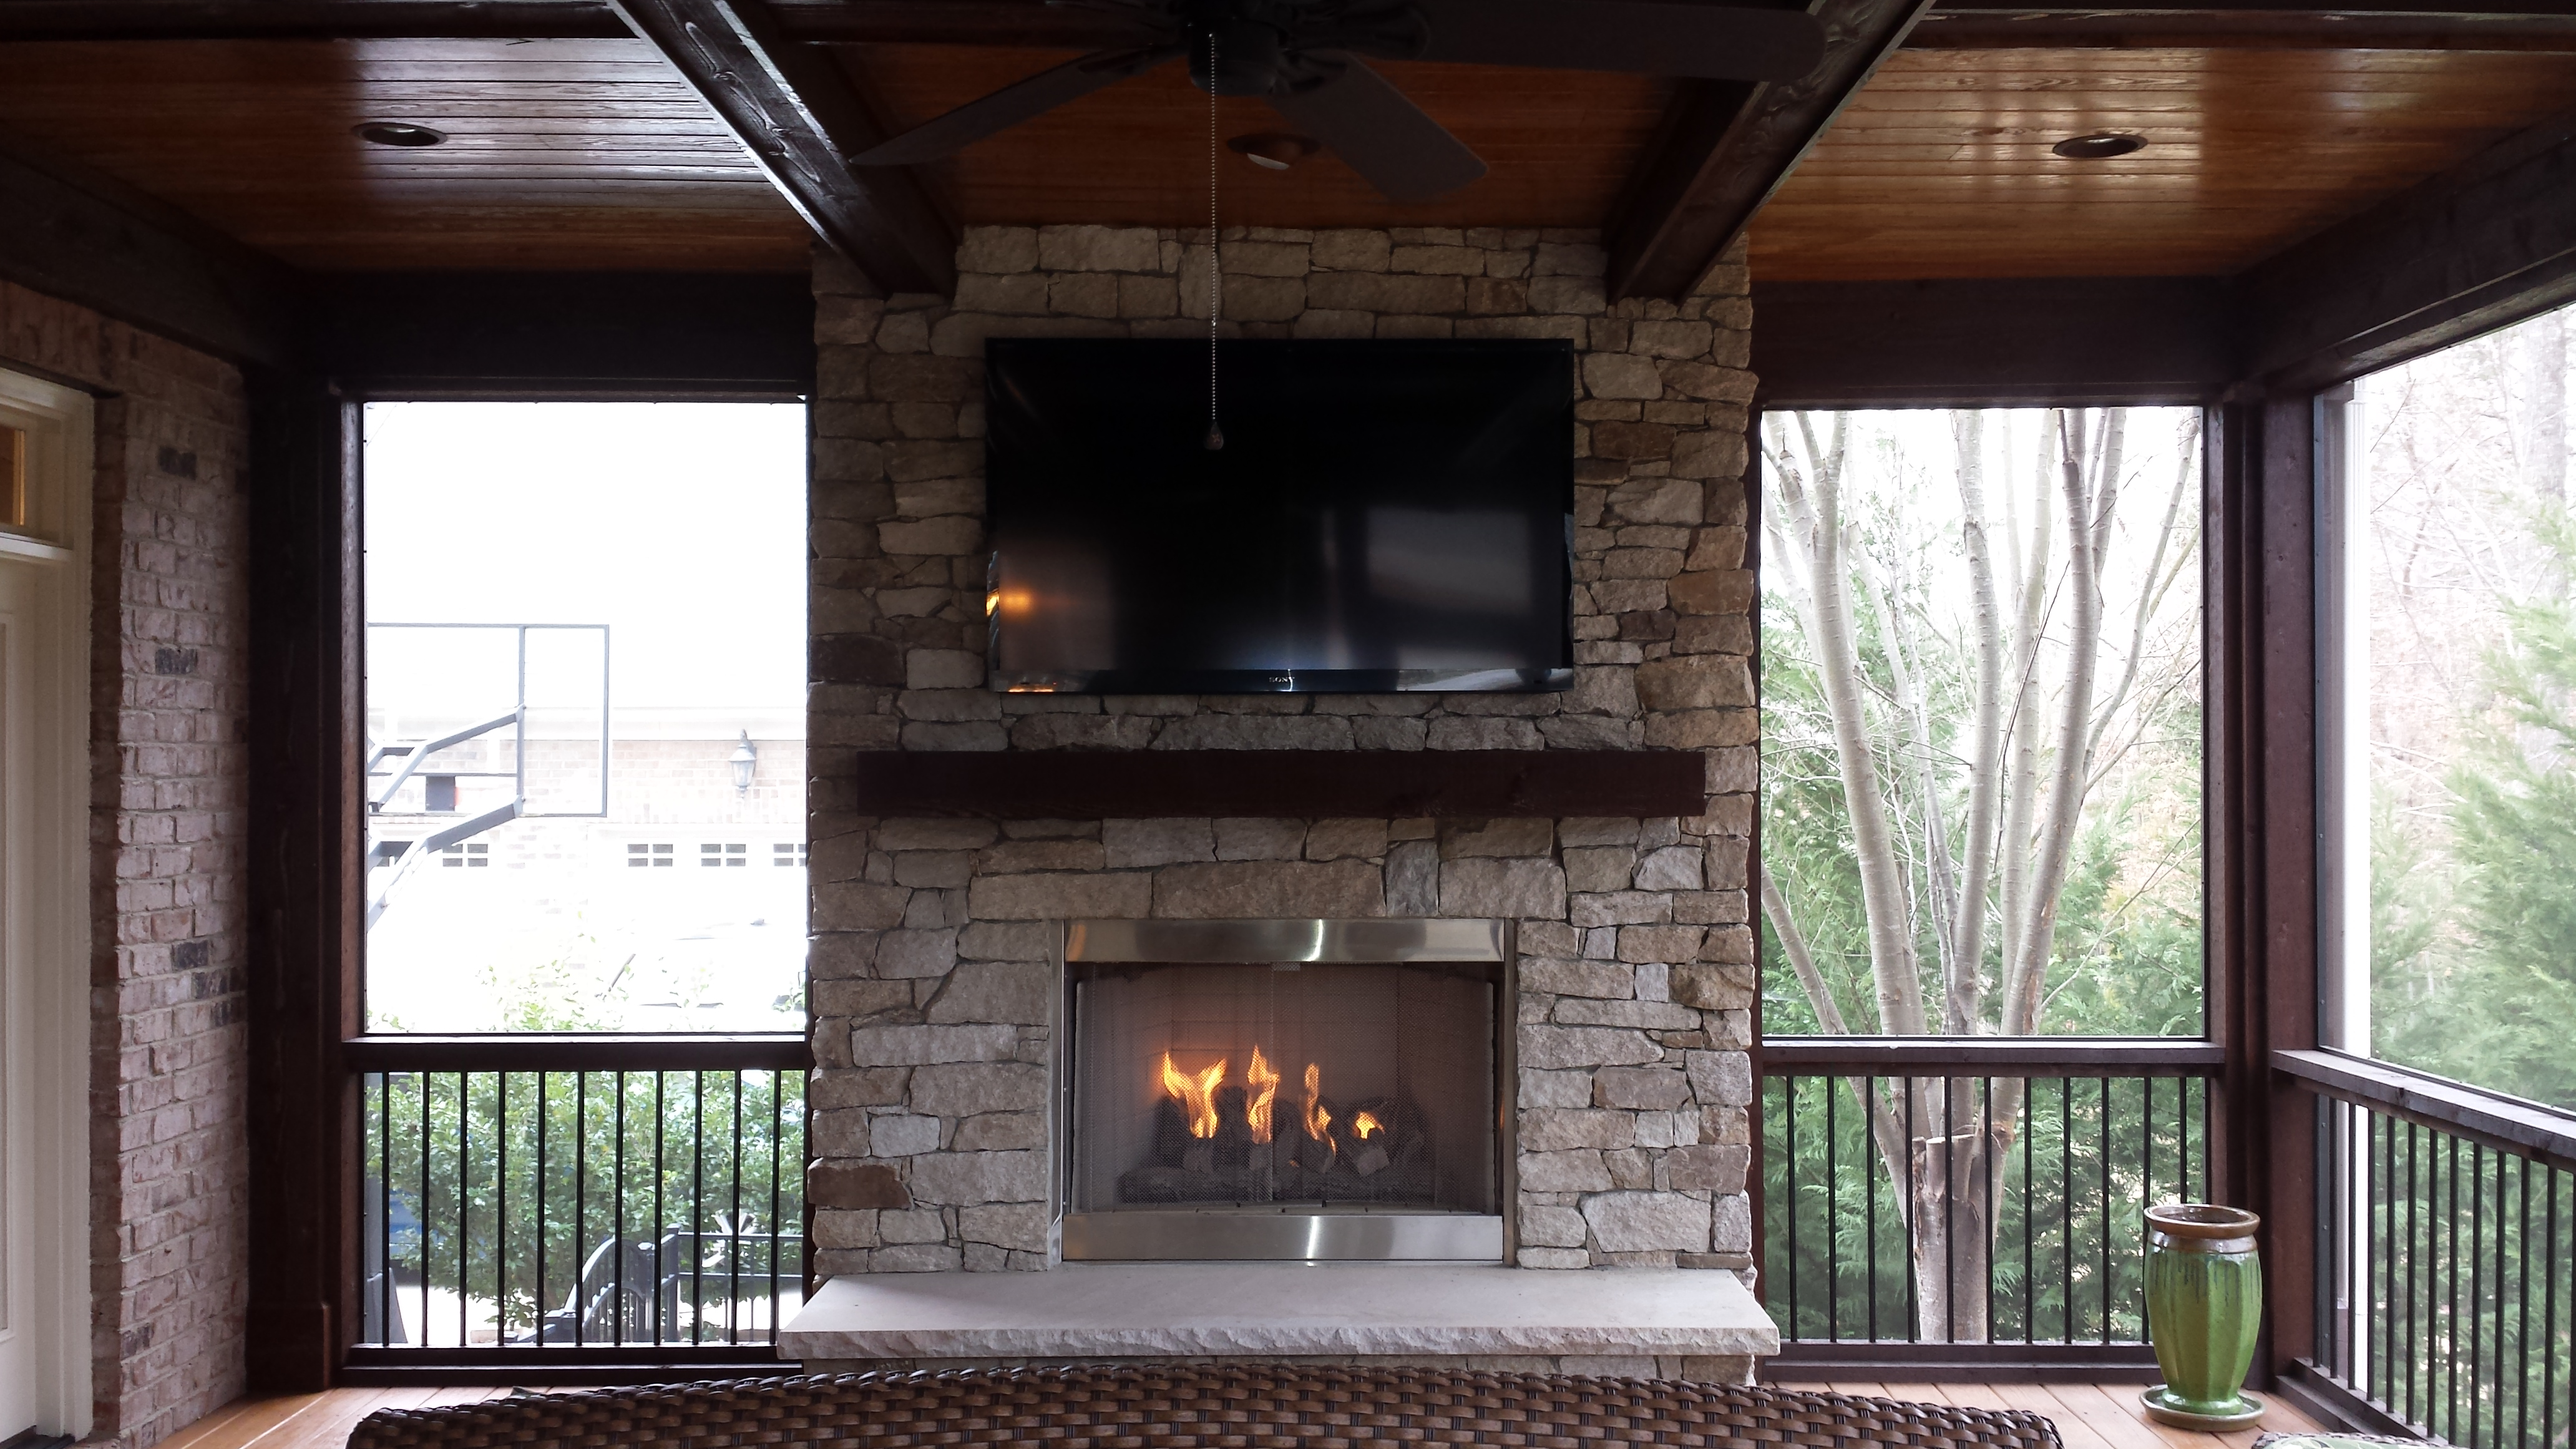 on remodel ideas with hd renovation pixels fireplace resolution phoenix